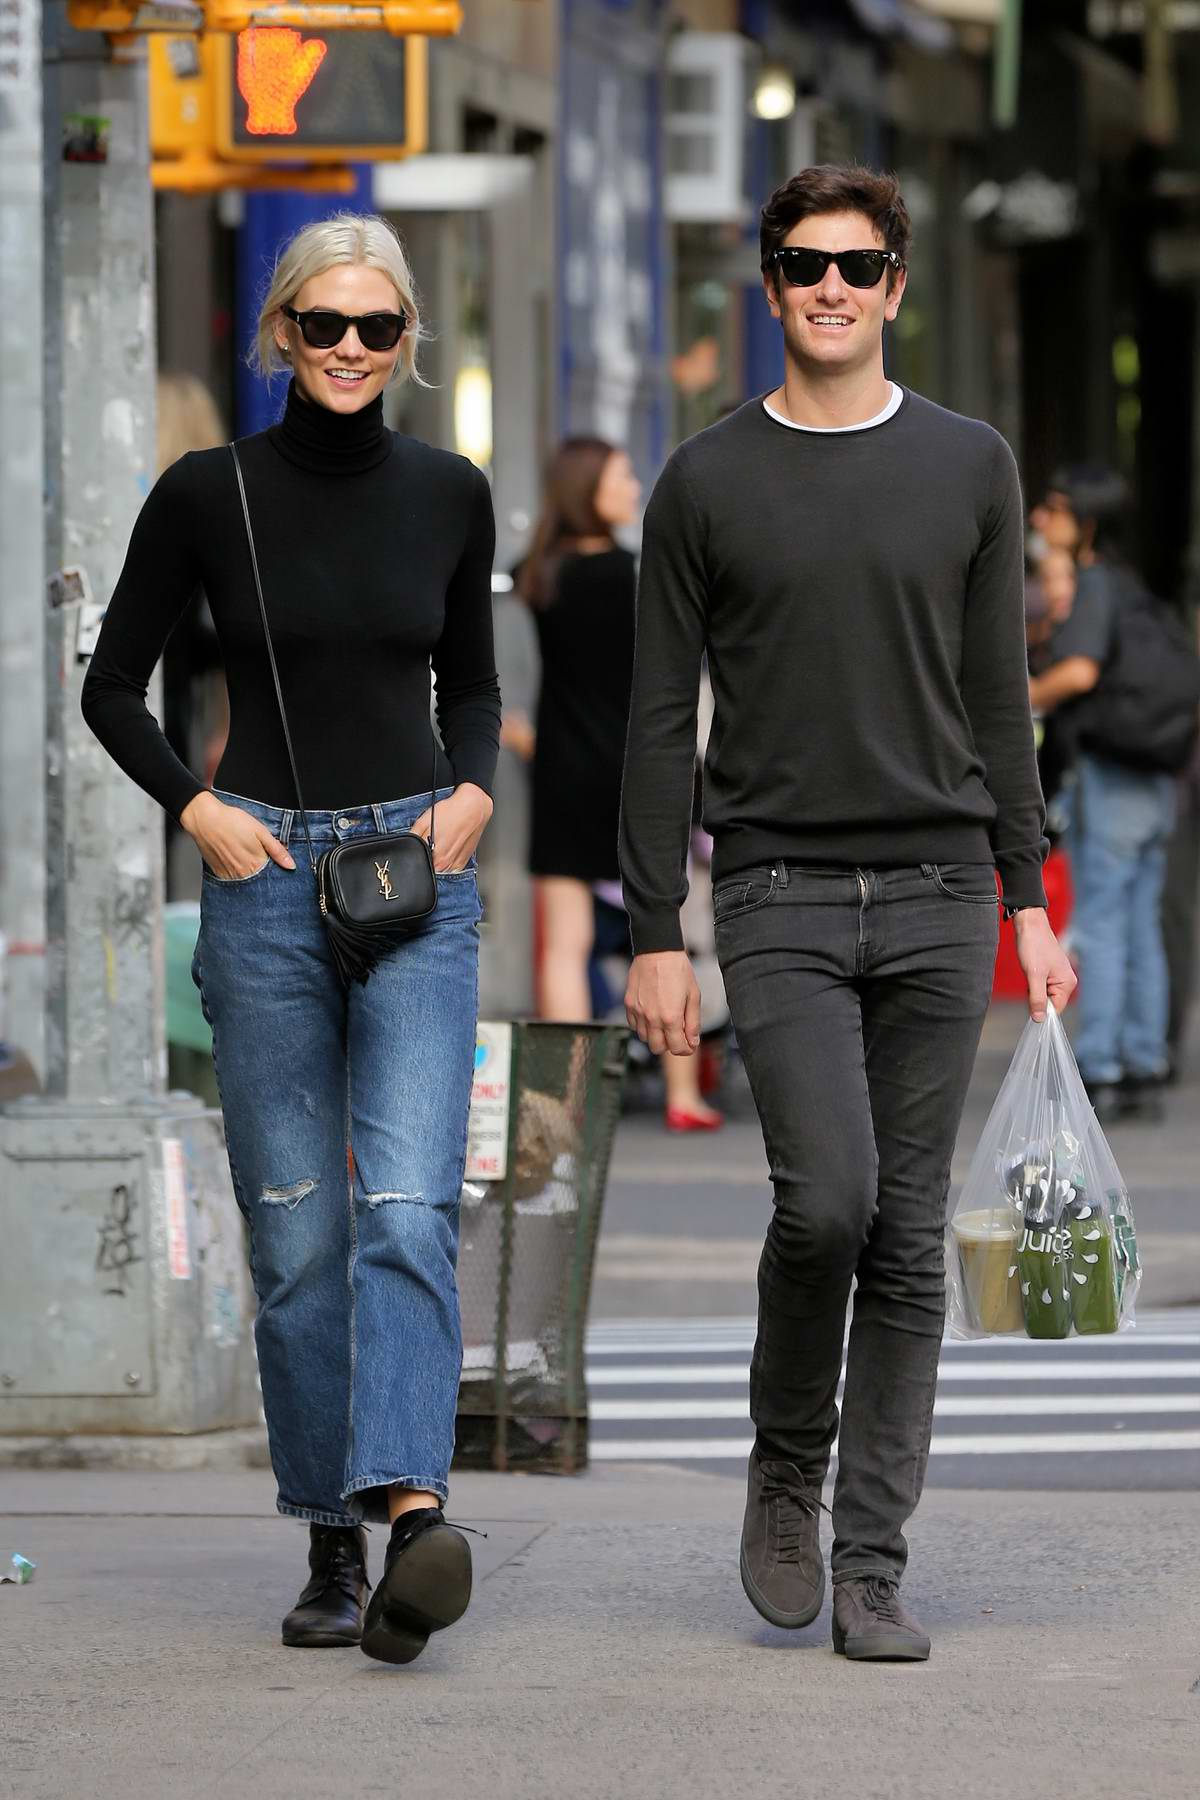 Karlie Kloss Walks Home With Boyfriend Joshua Kushner In West